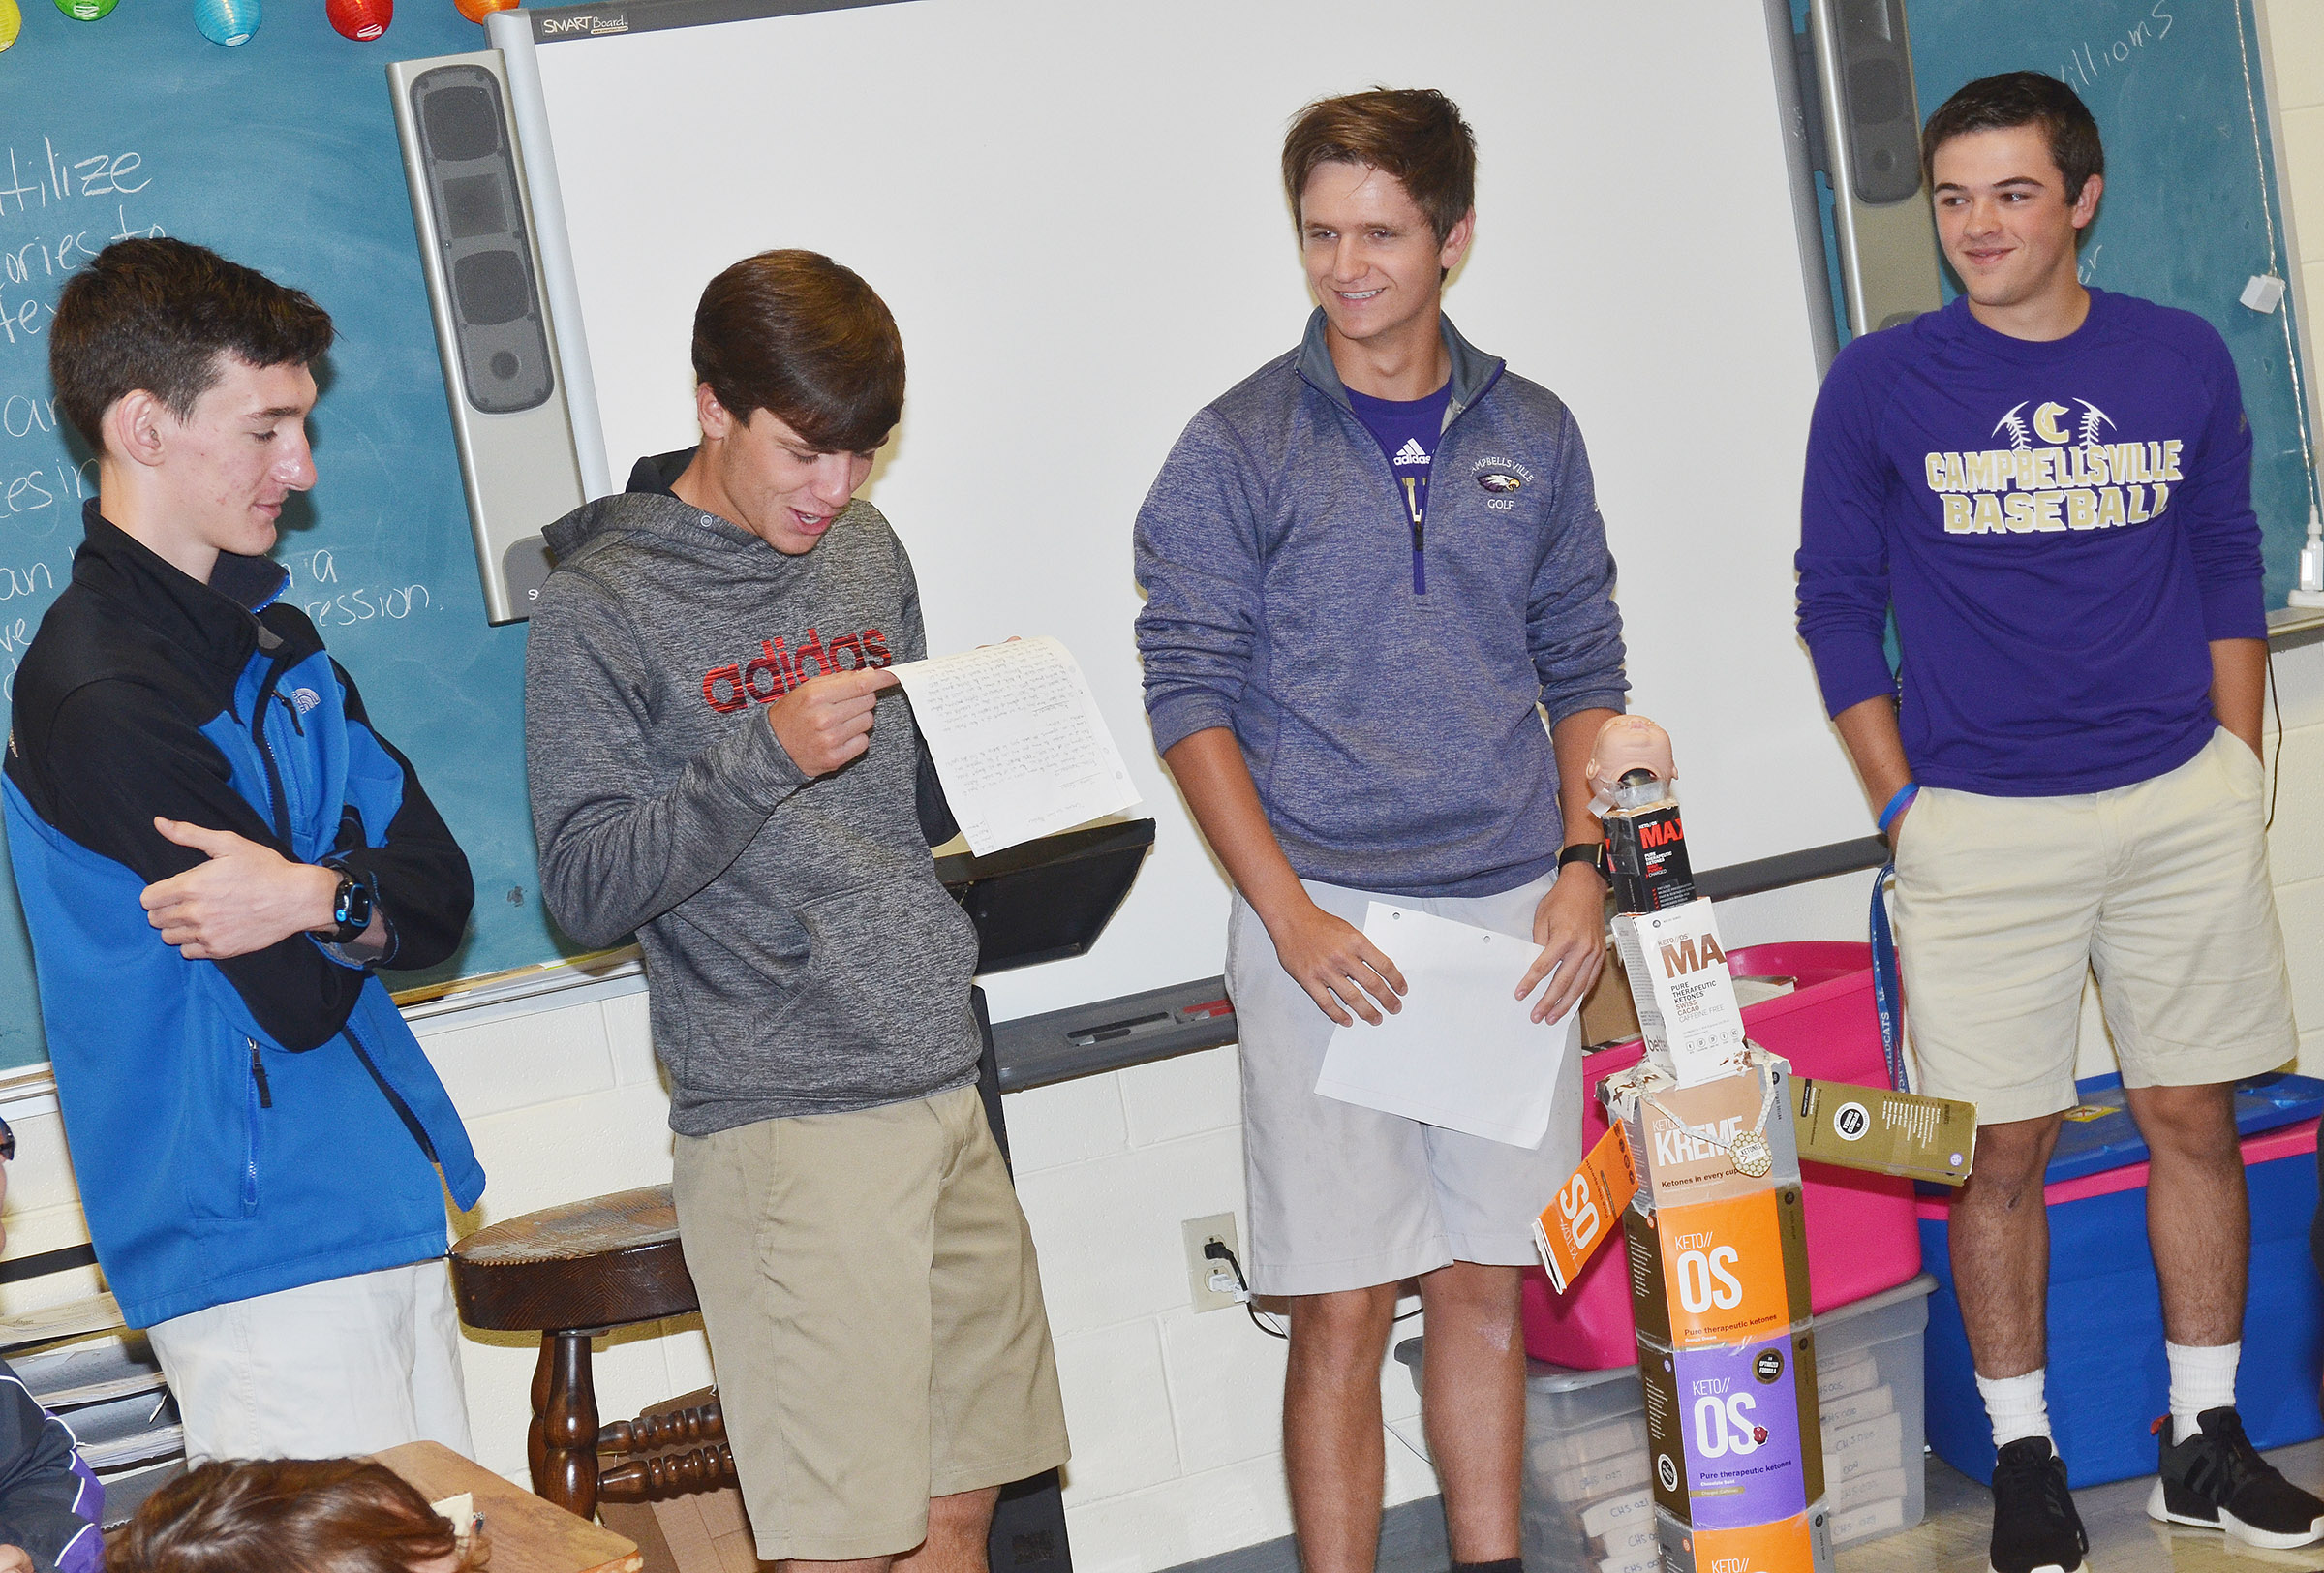 CHS juniors, from left, Ian McAcninch, Layton Hord, Myles Murrell and Ryan Kearney present their monster to their classmates.